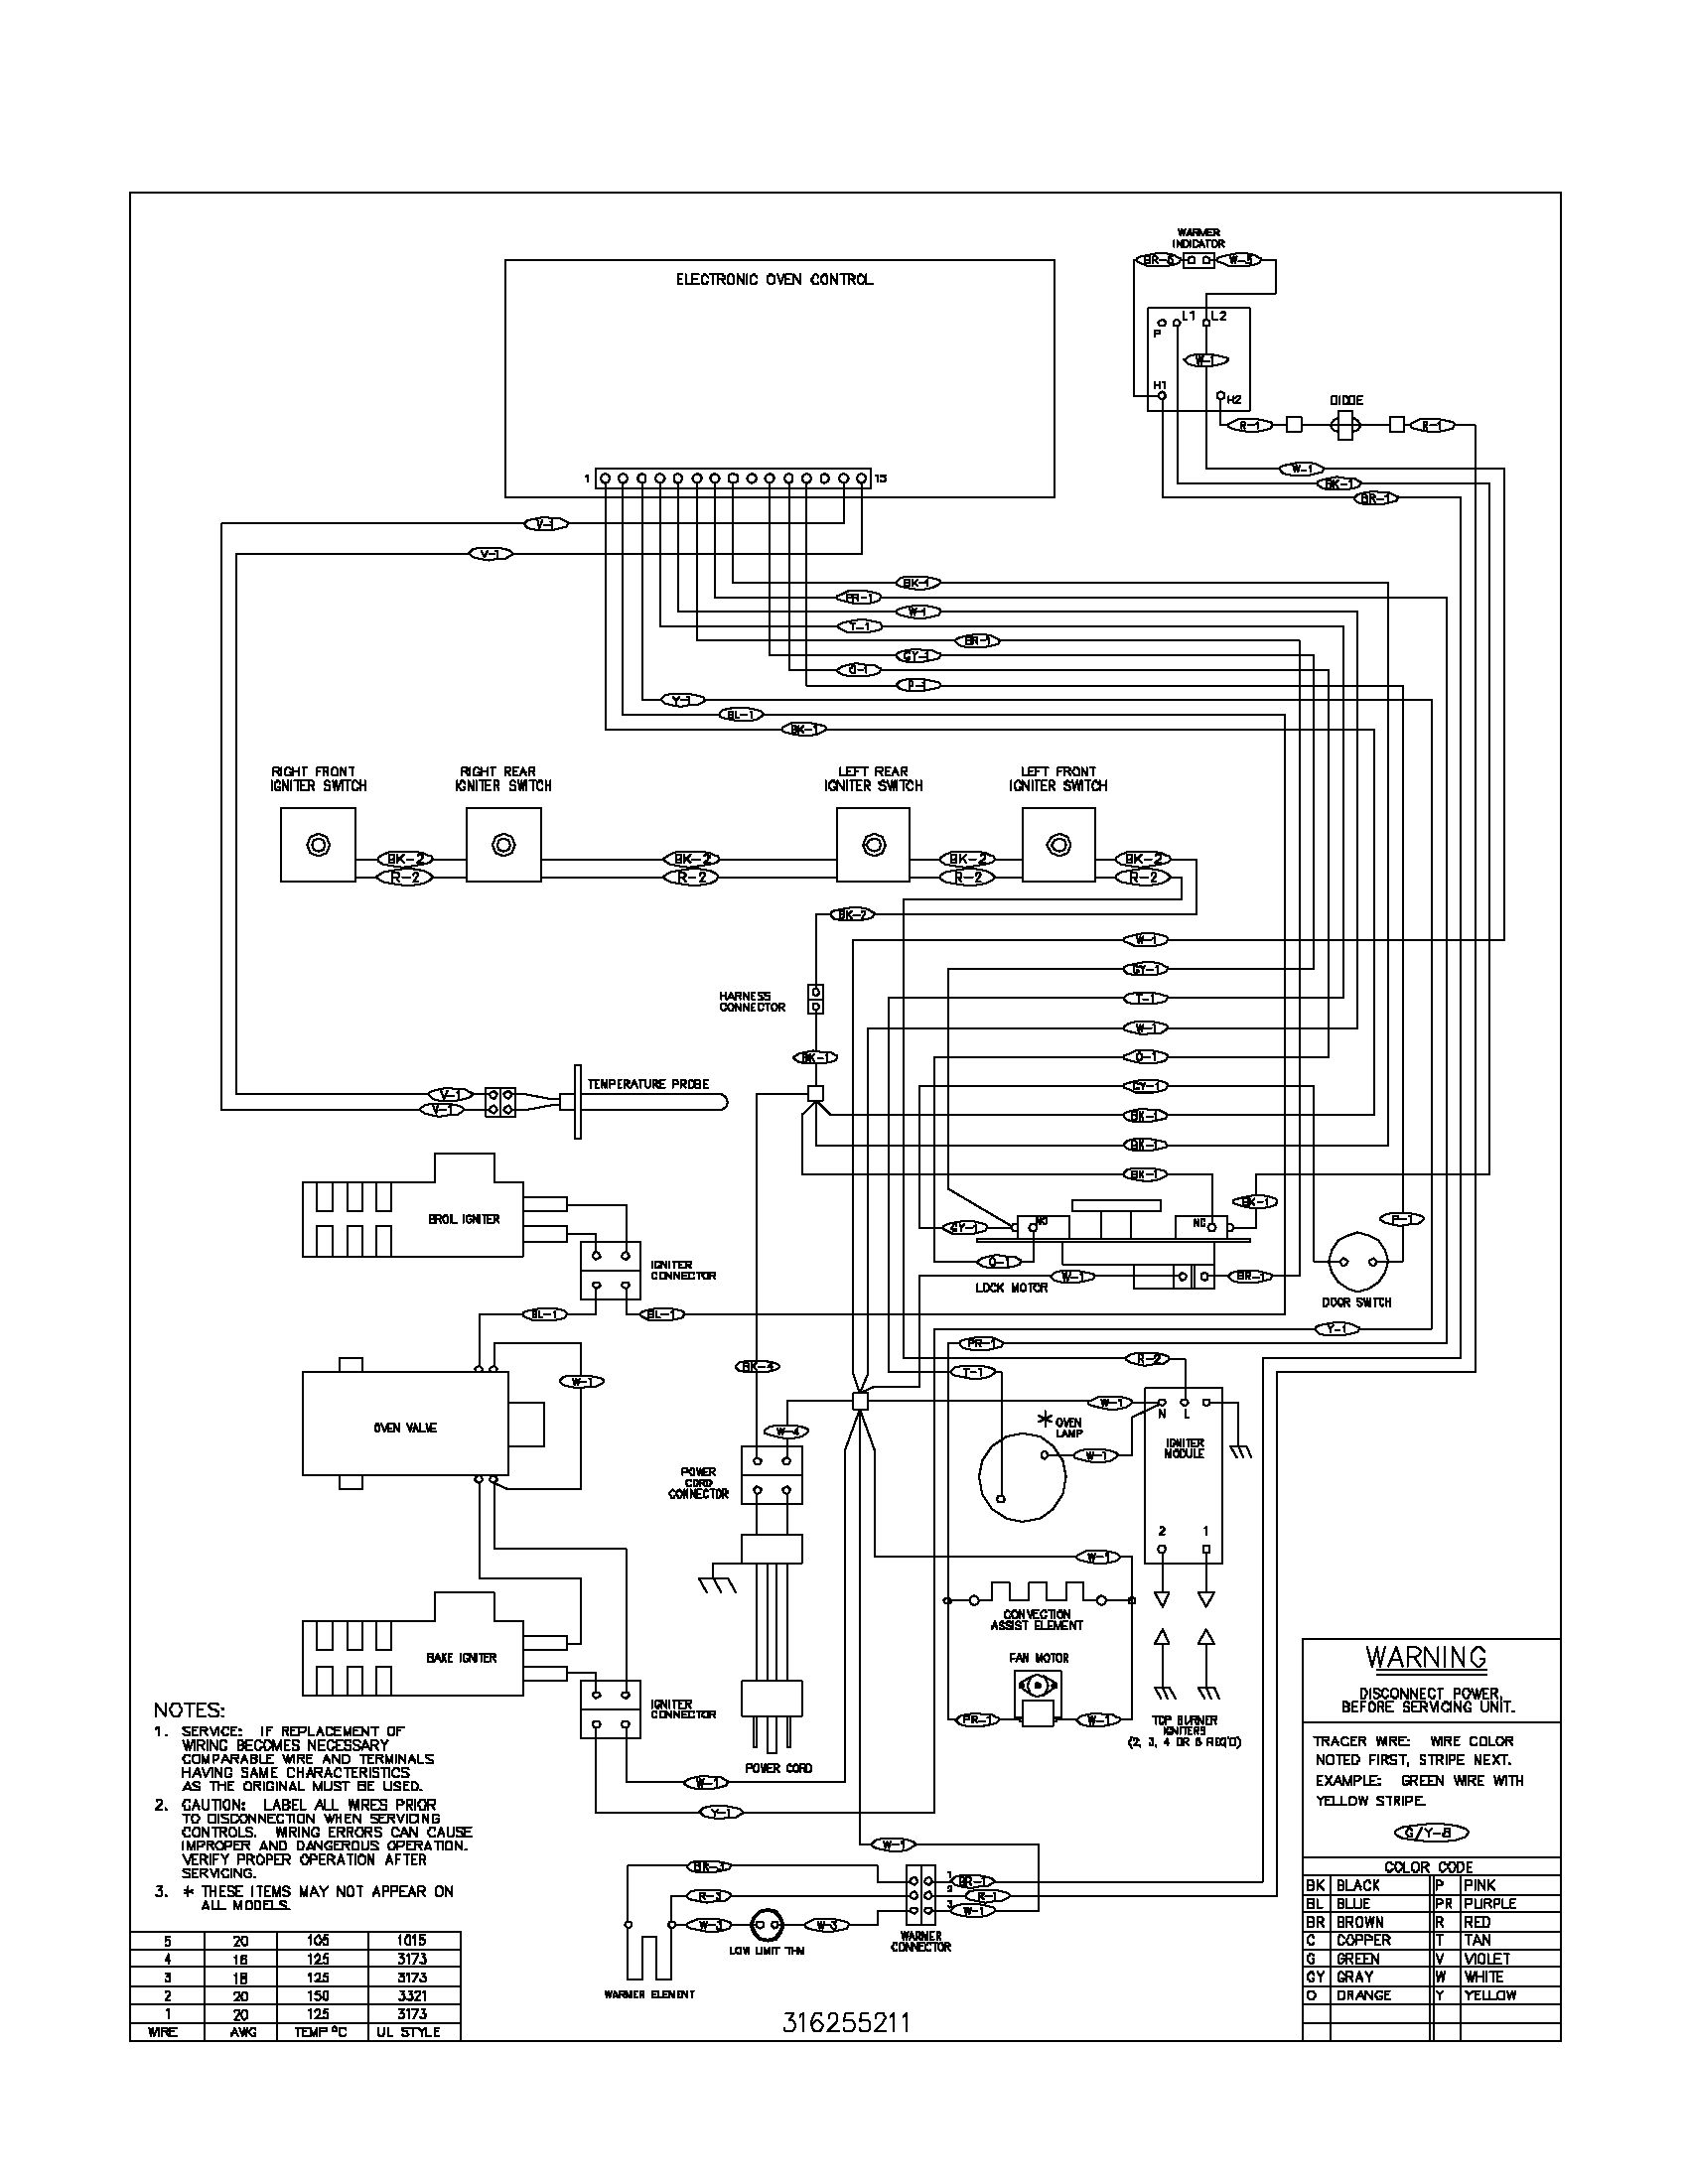 wiring diagram parts 100 [ kenmore dishwasher wiring diagram ] kenmore whirlpool Range Plug Wiring Diagram at n-0.co